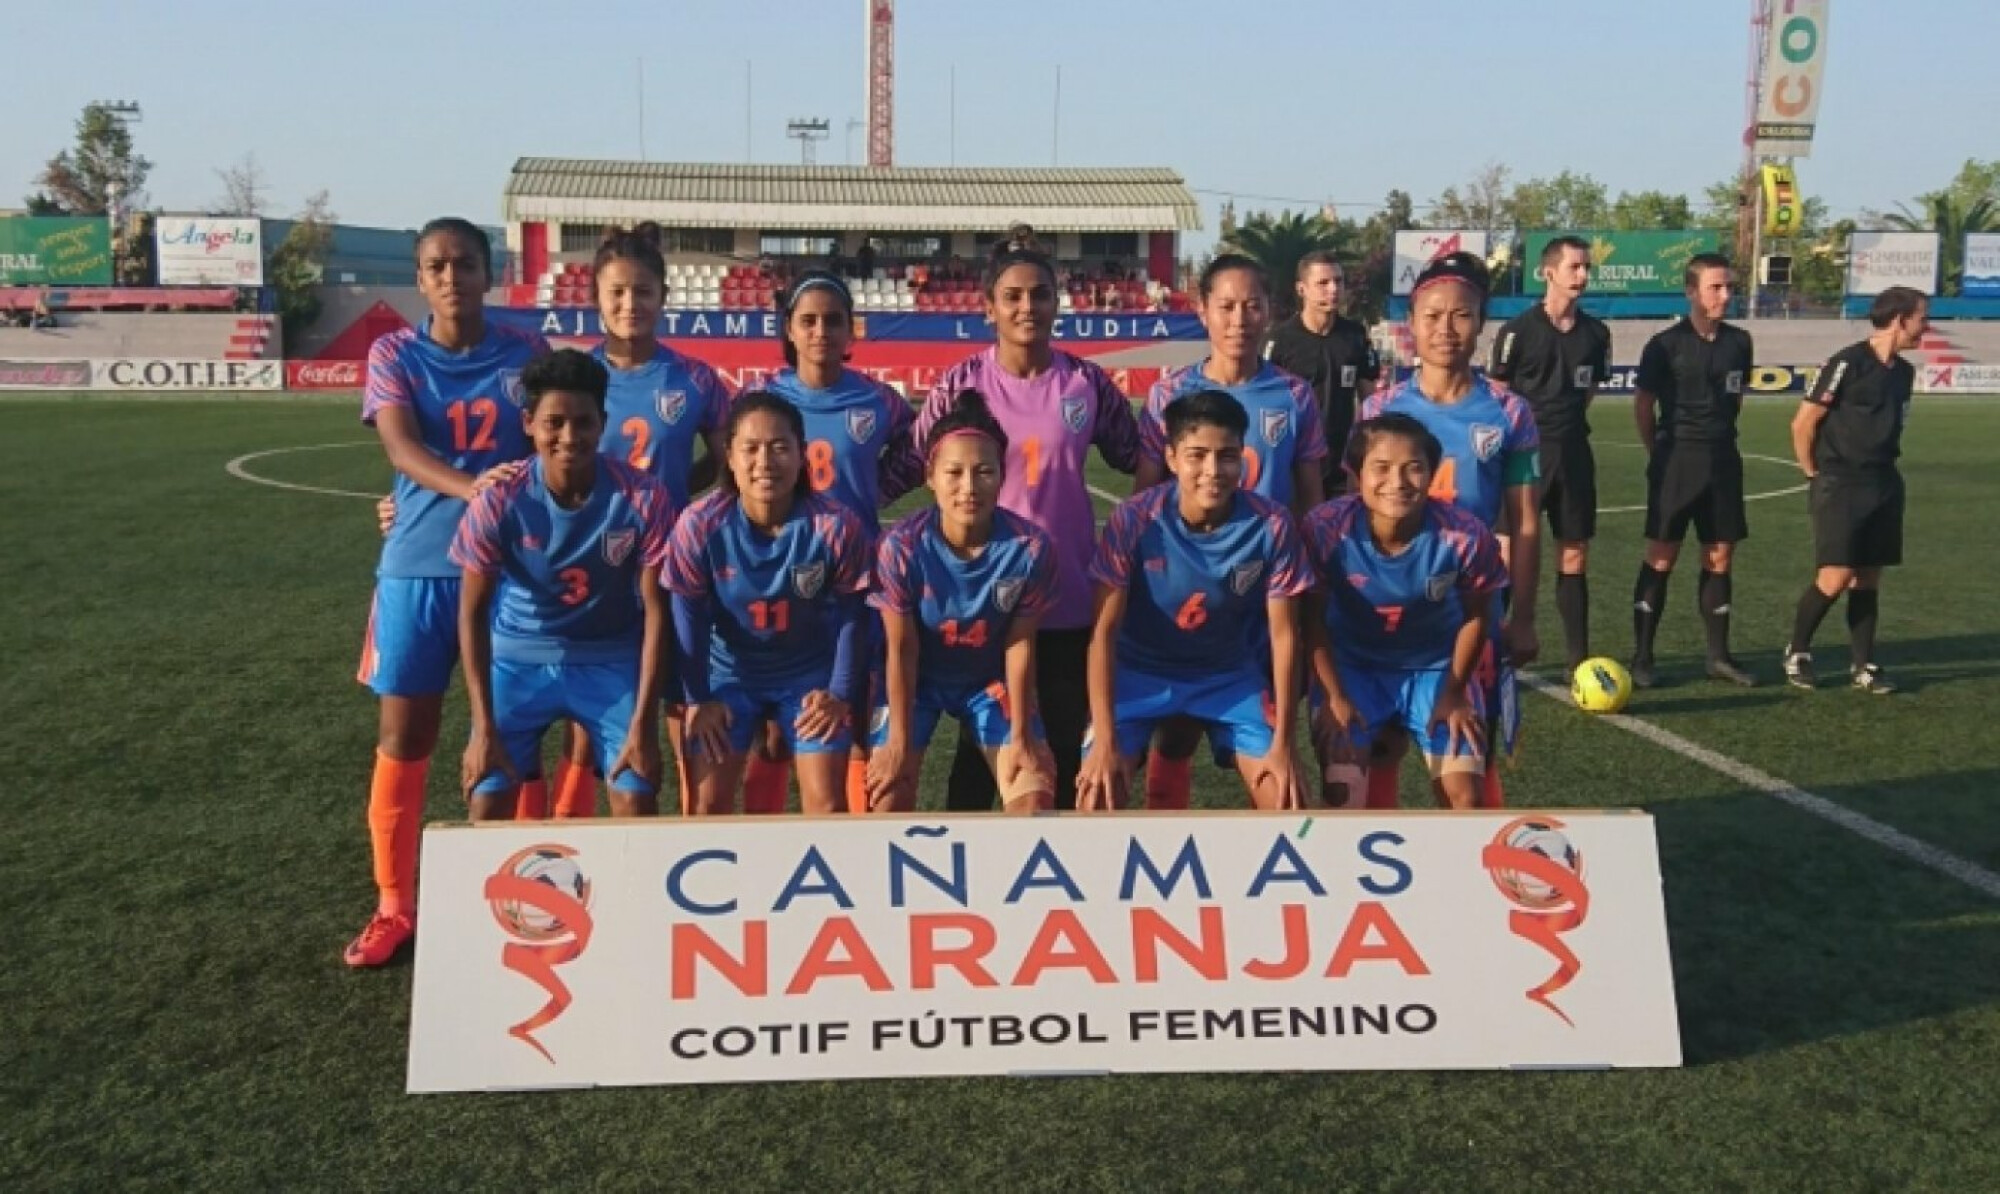 Indian Women's Football Team kicked-off their COTIF Cup 2019 campaign with a loss to Villarreal CF